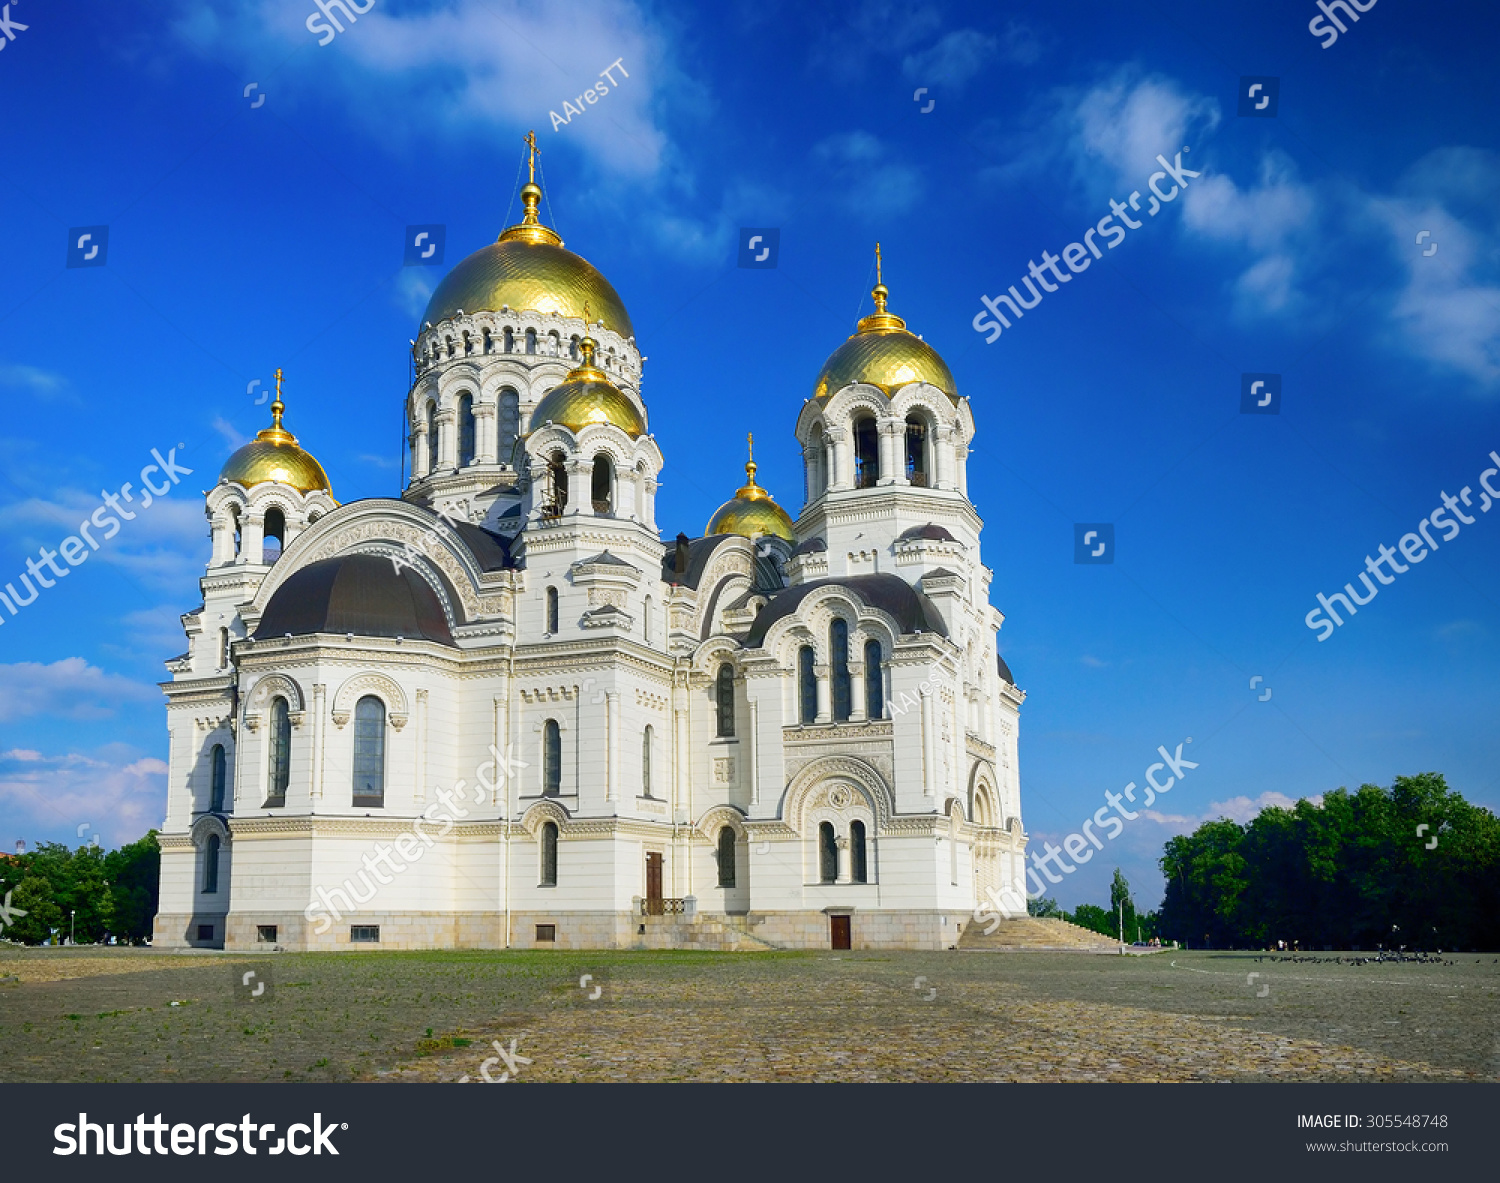 Ascension Cathedral Novocherkassk: history, description and interesting facts 53